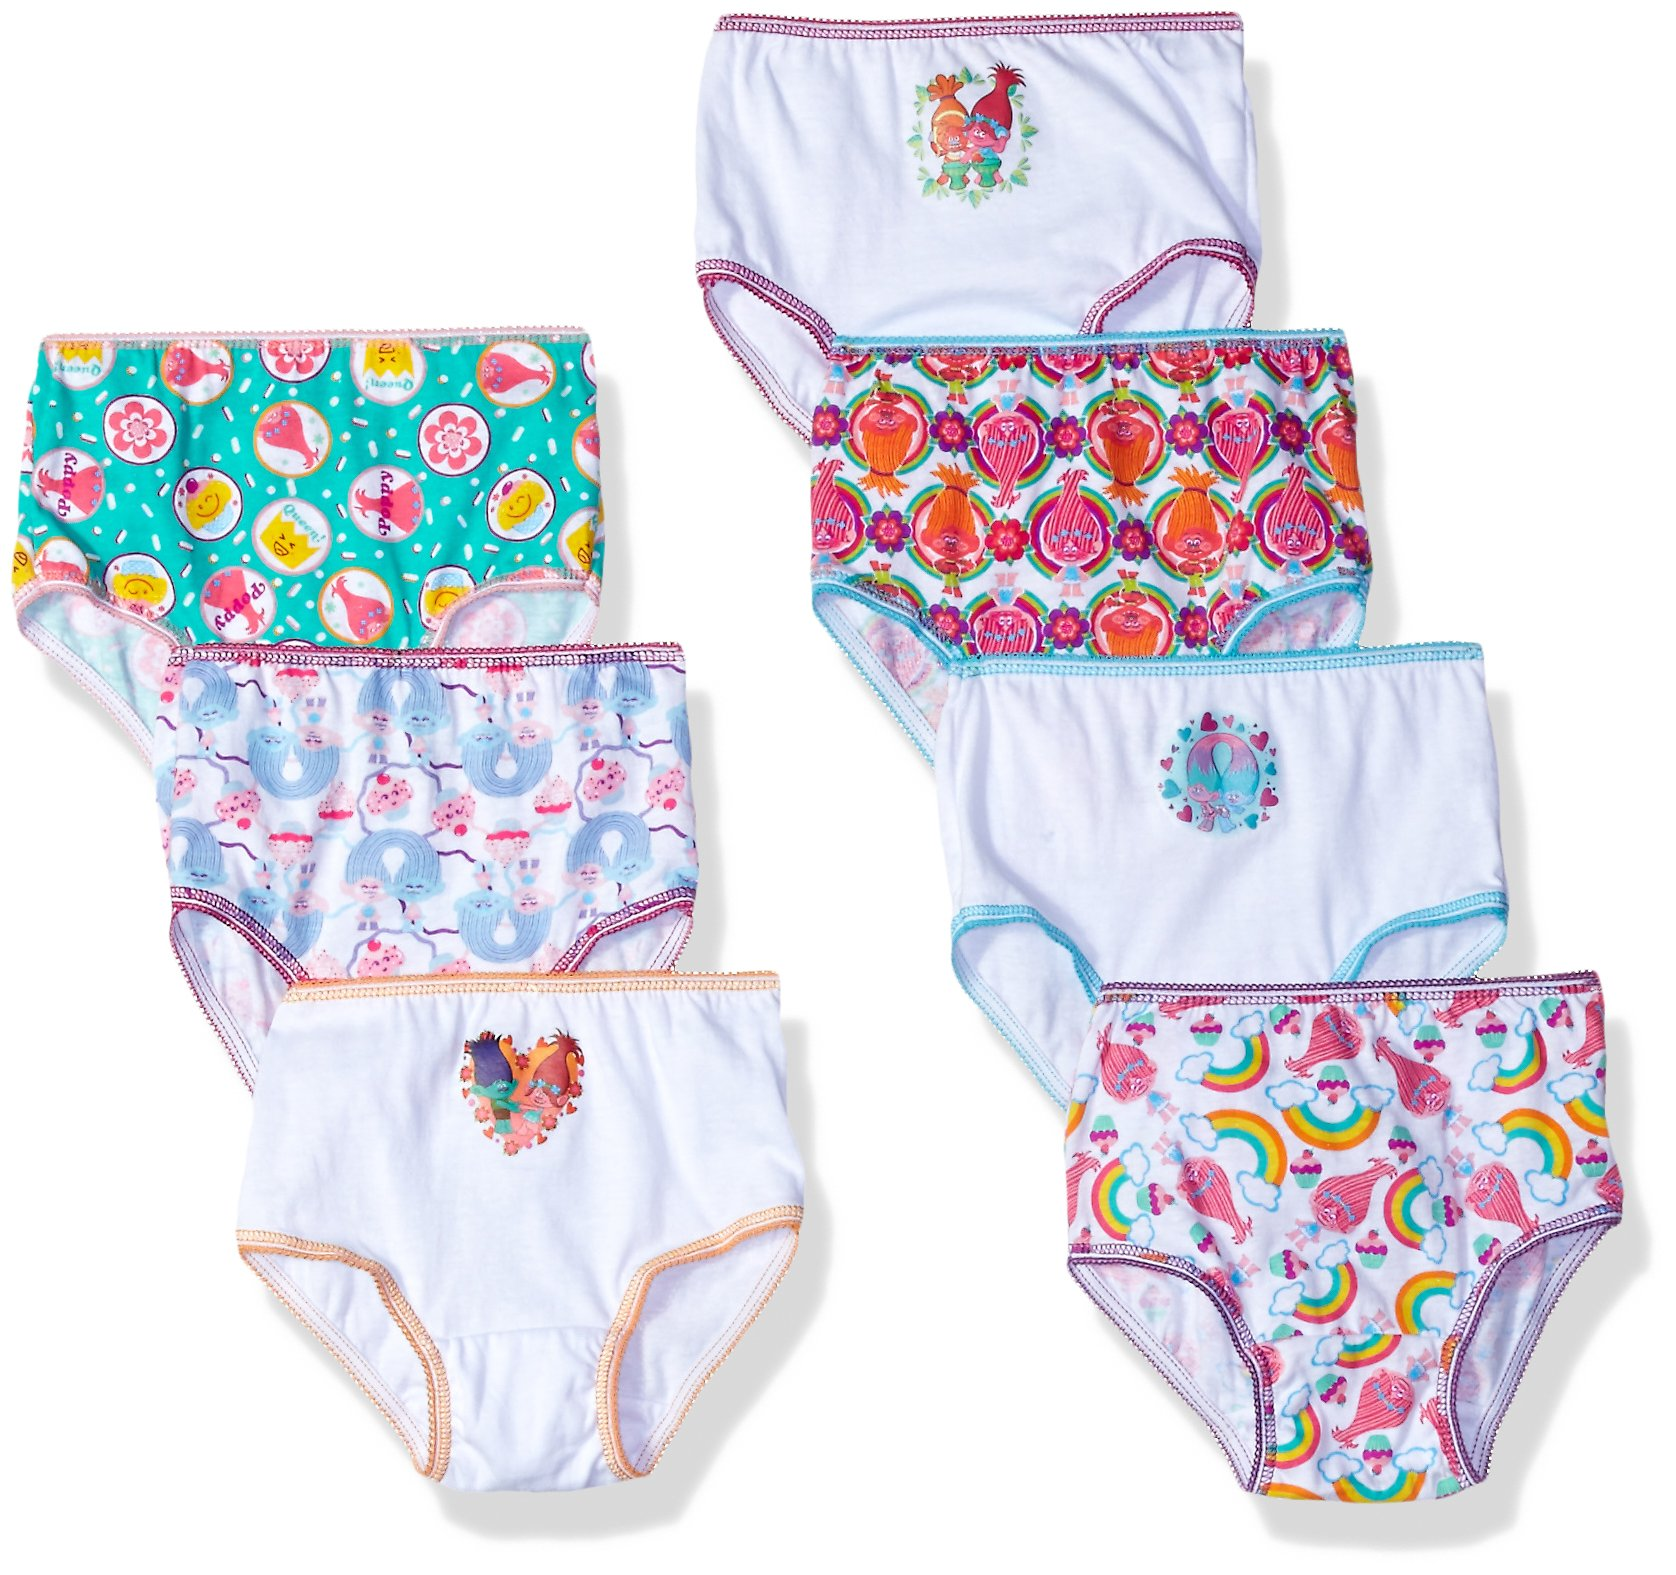 Dreamworks Toddler Girls' 7-Pack Trolls Underwear Panty, Troll/Multi, 2T/3T